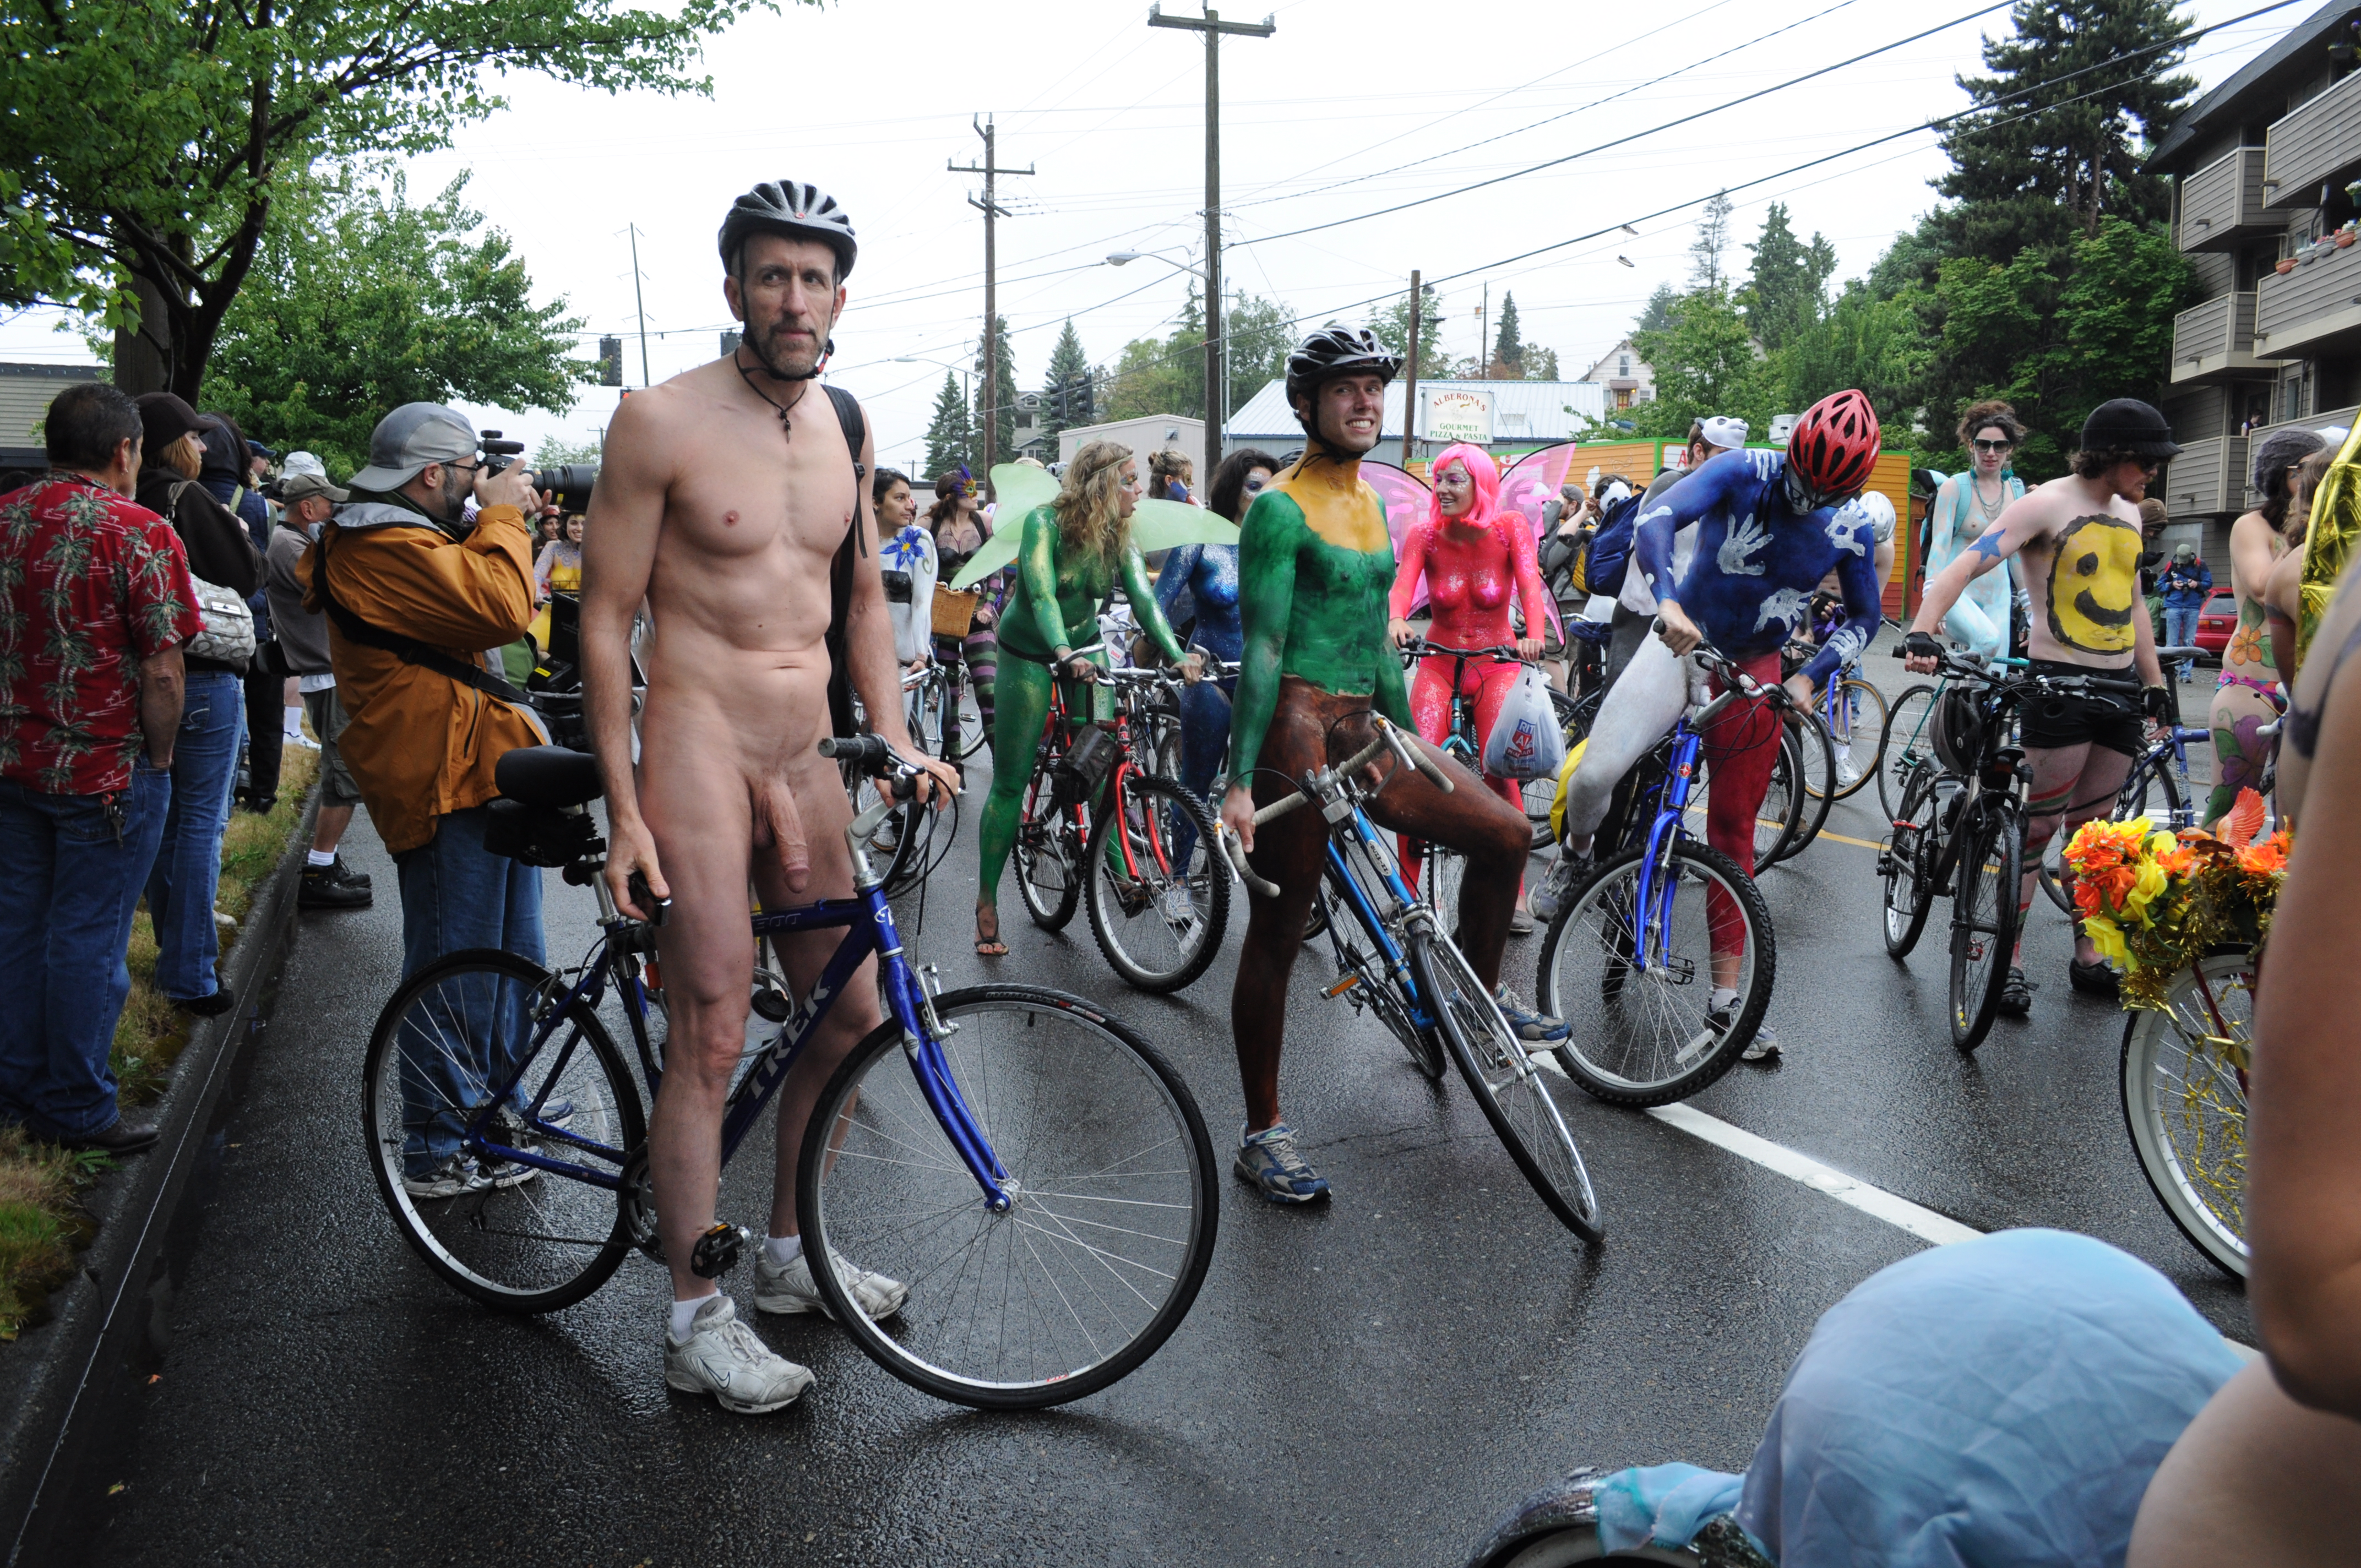 fremont nude File:Fremont Solstice Parade 2011 - cyclists prepare 18.jpg